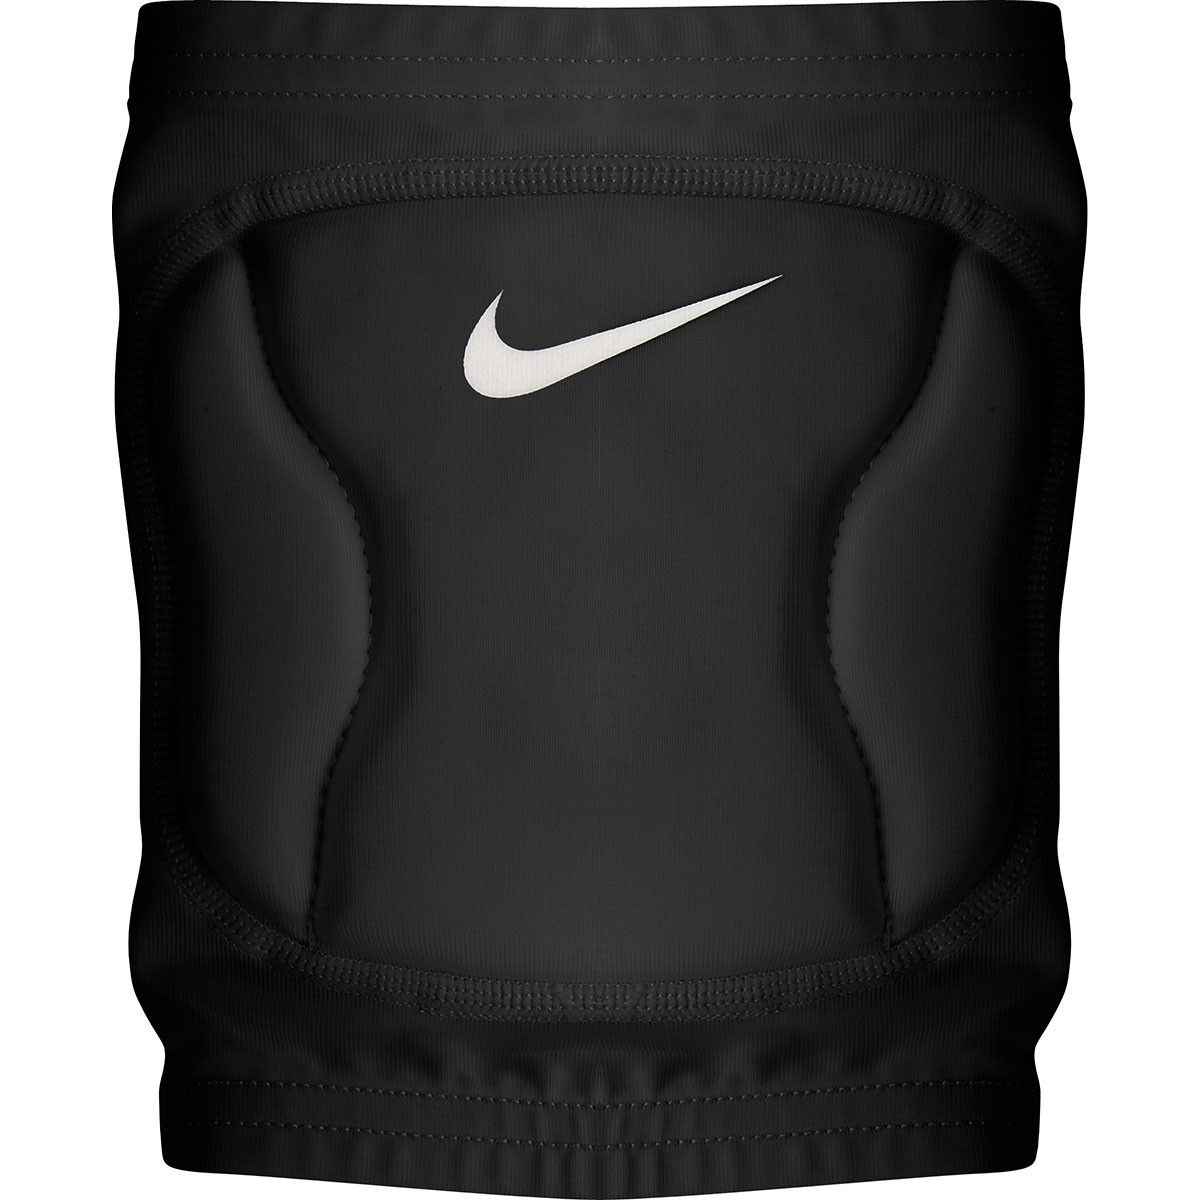 A Volley Ball Knee Pads Nike Volleyball Knee Pads Volleyball Knee Pads Nike Black Nikes